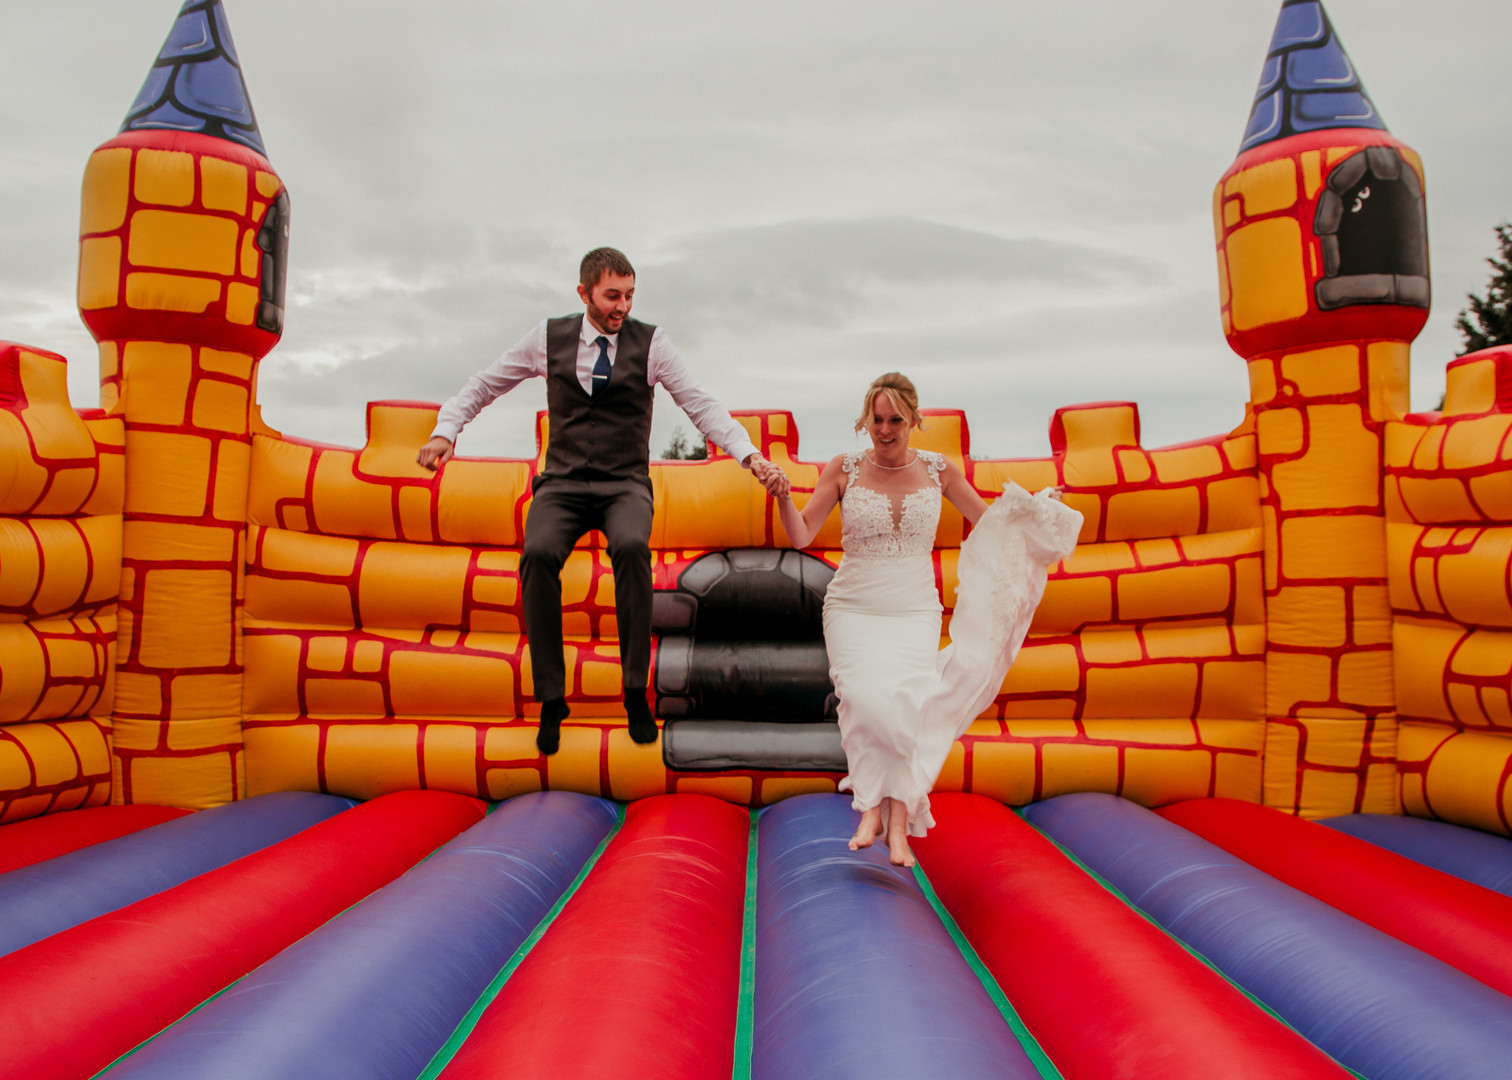 Bouncy Castle Wedding